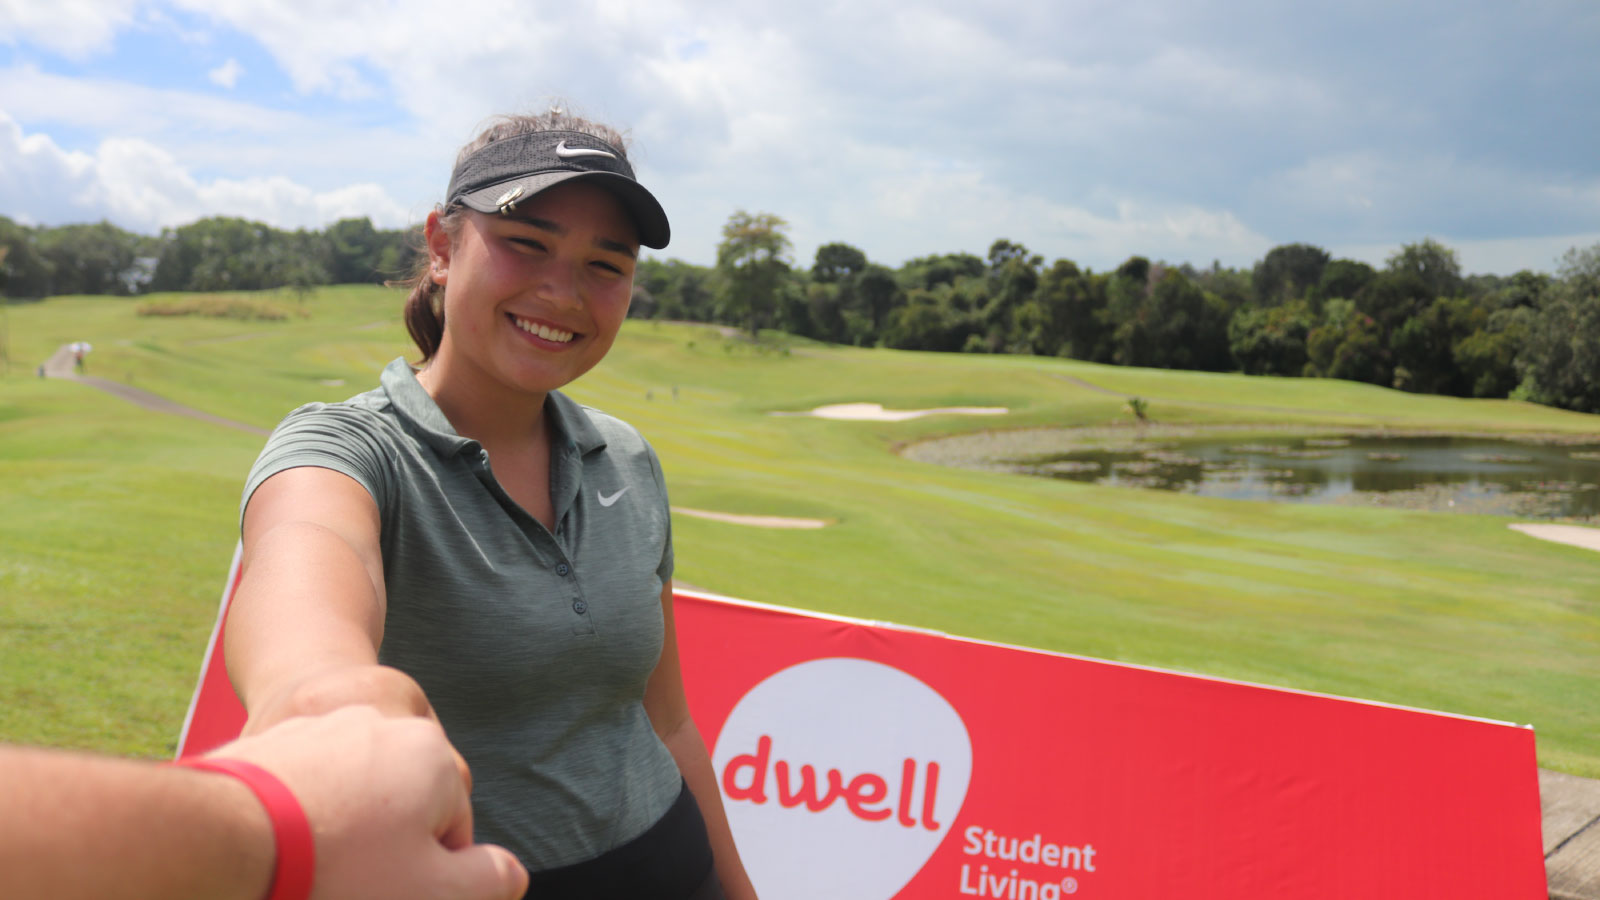 Camille Boyd, top-ranked player on the Junior Order of Merit Rankings 2017-2018, posing in front of dwell Student Living signage at Bintan Lagoon Resort